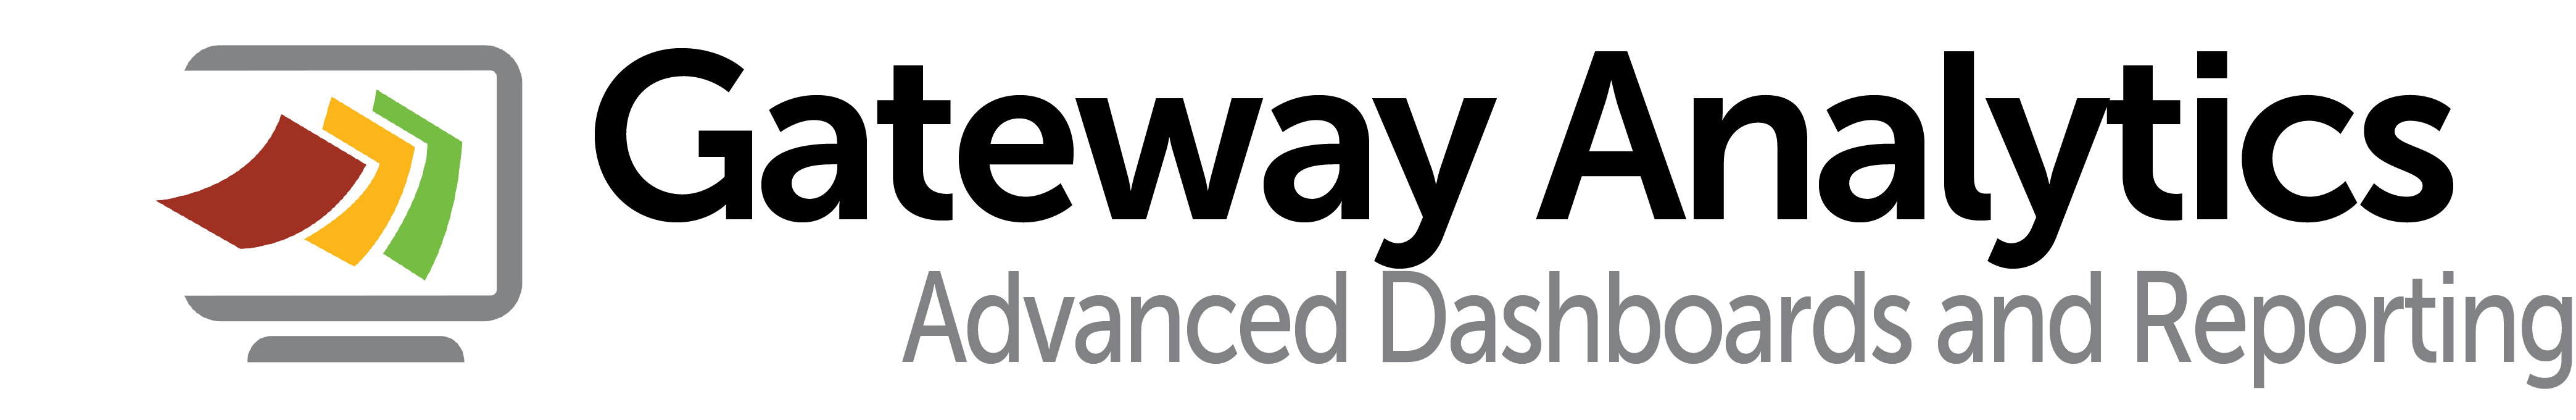 Gateway Analytics Logo Pre Vector 2017